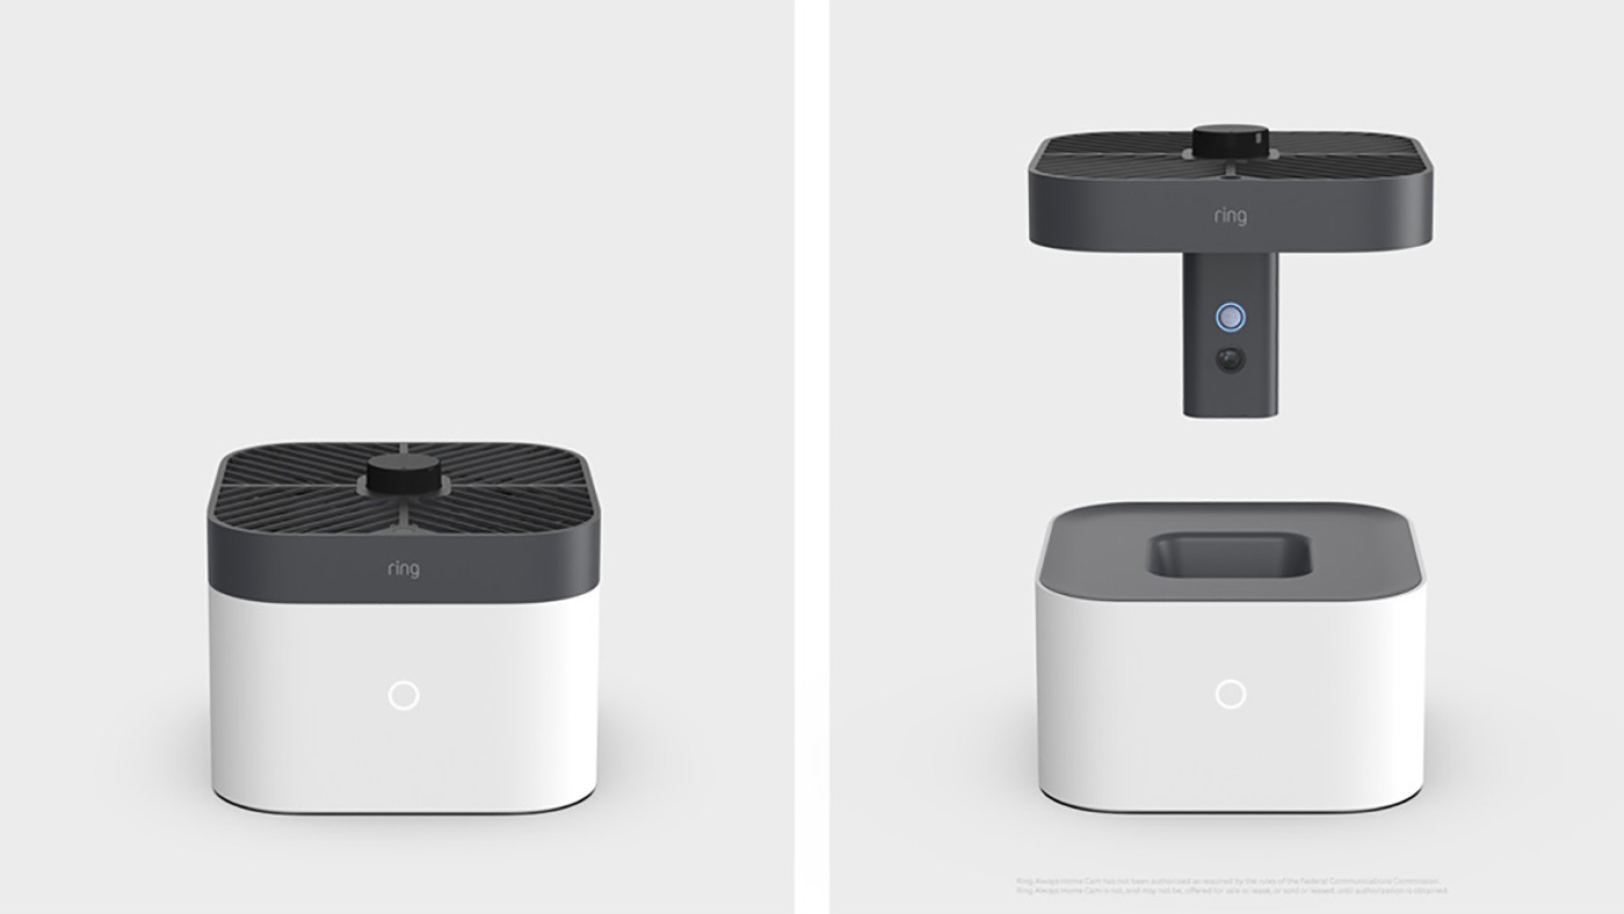 Amazon's Newest Ring Device Is a Flying Security Camera Drone